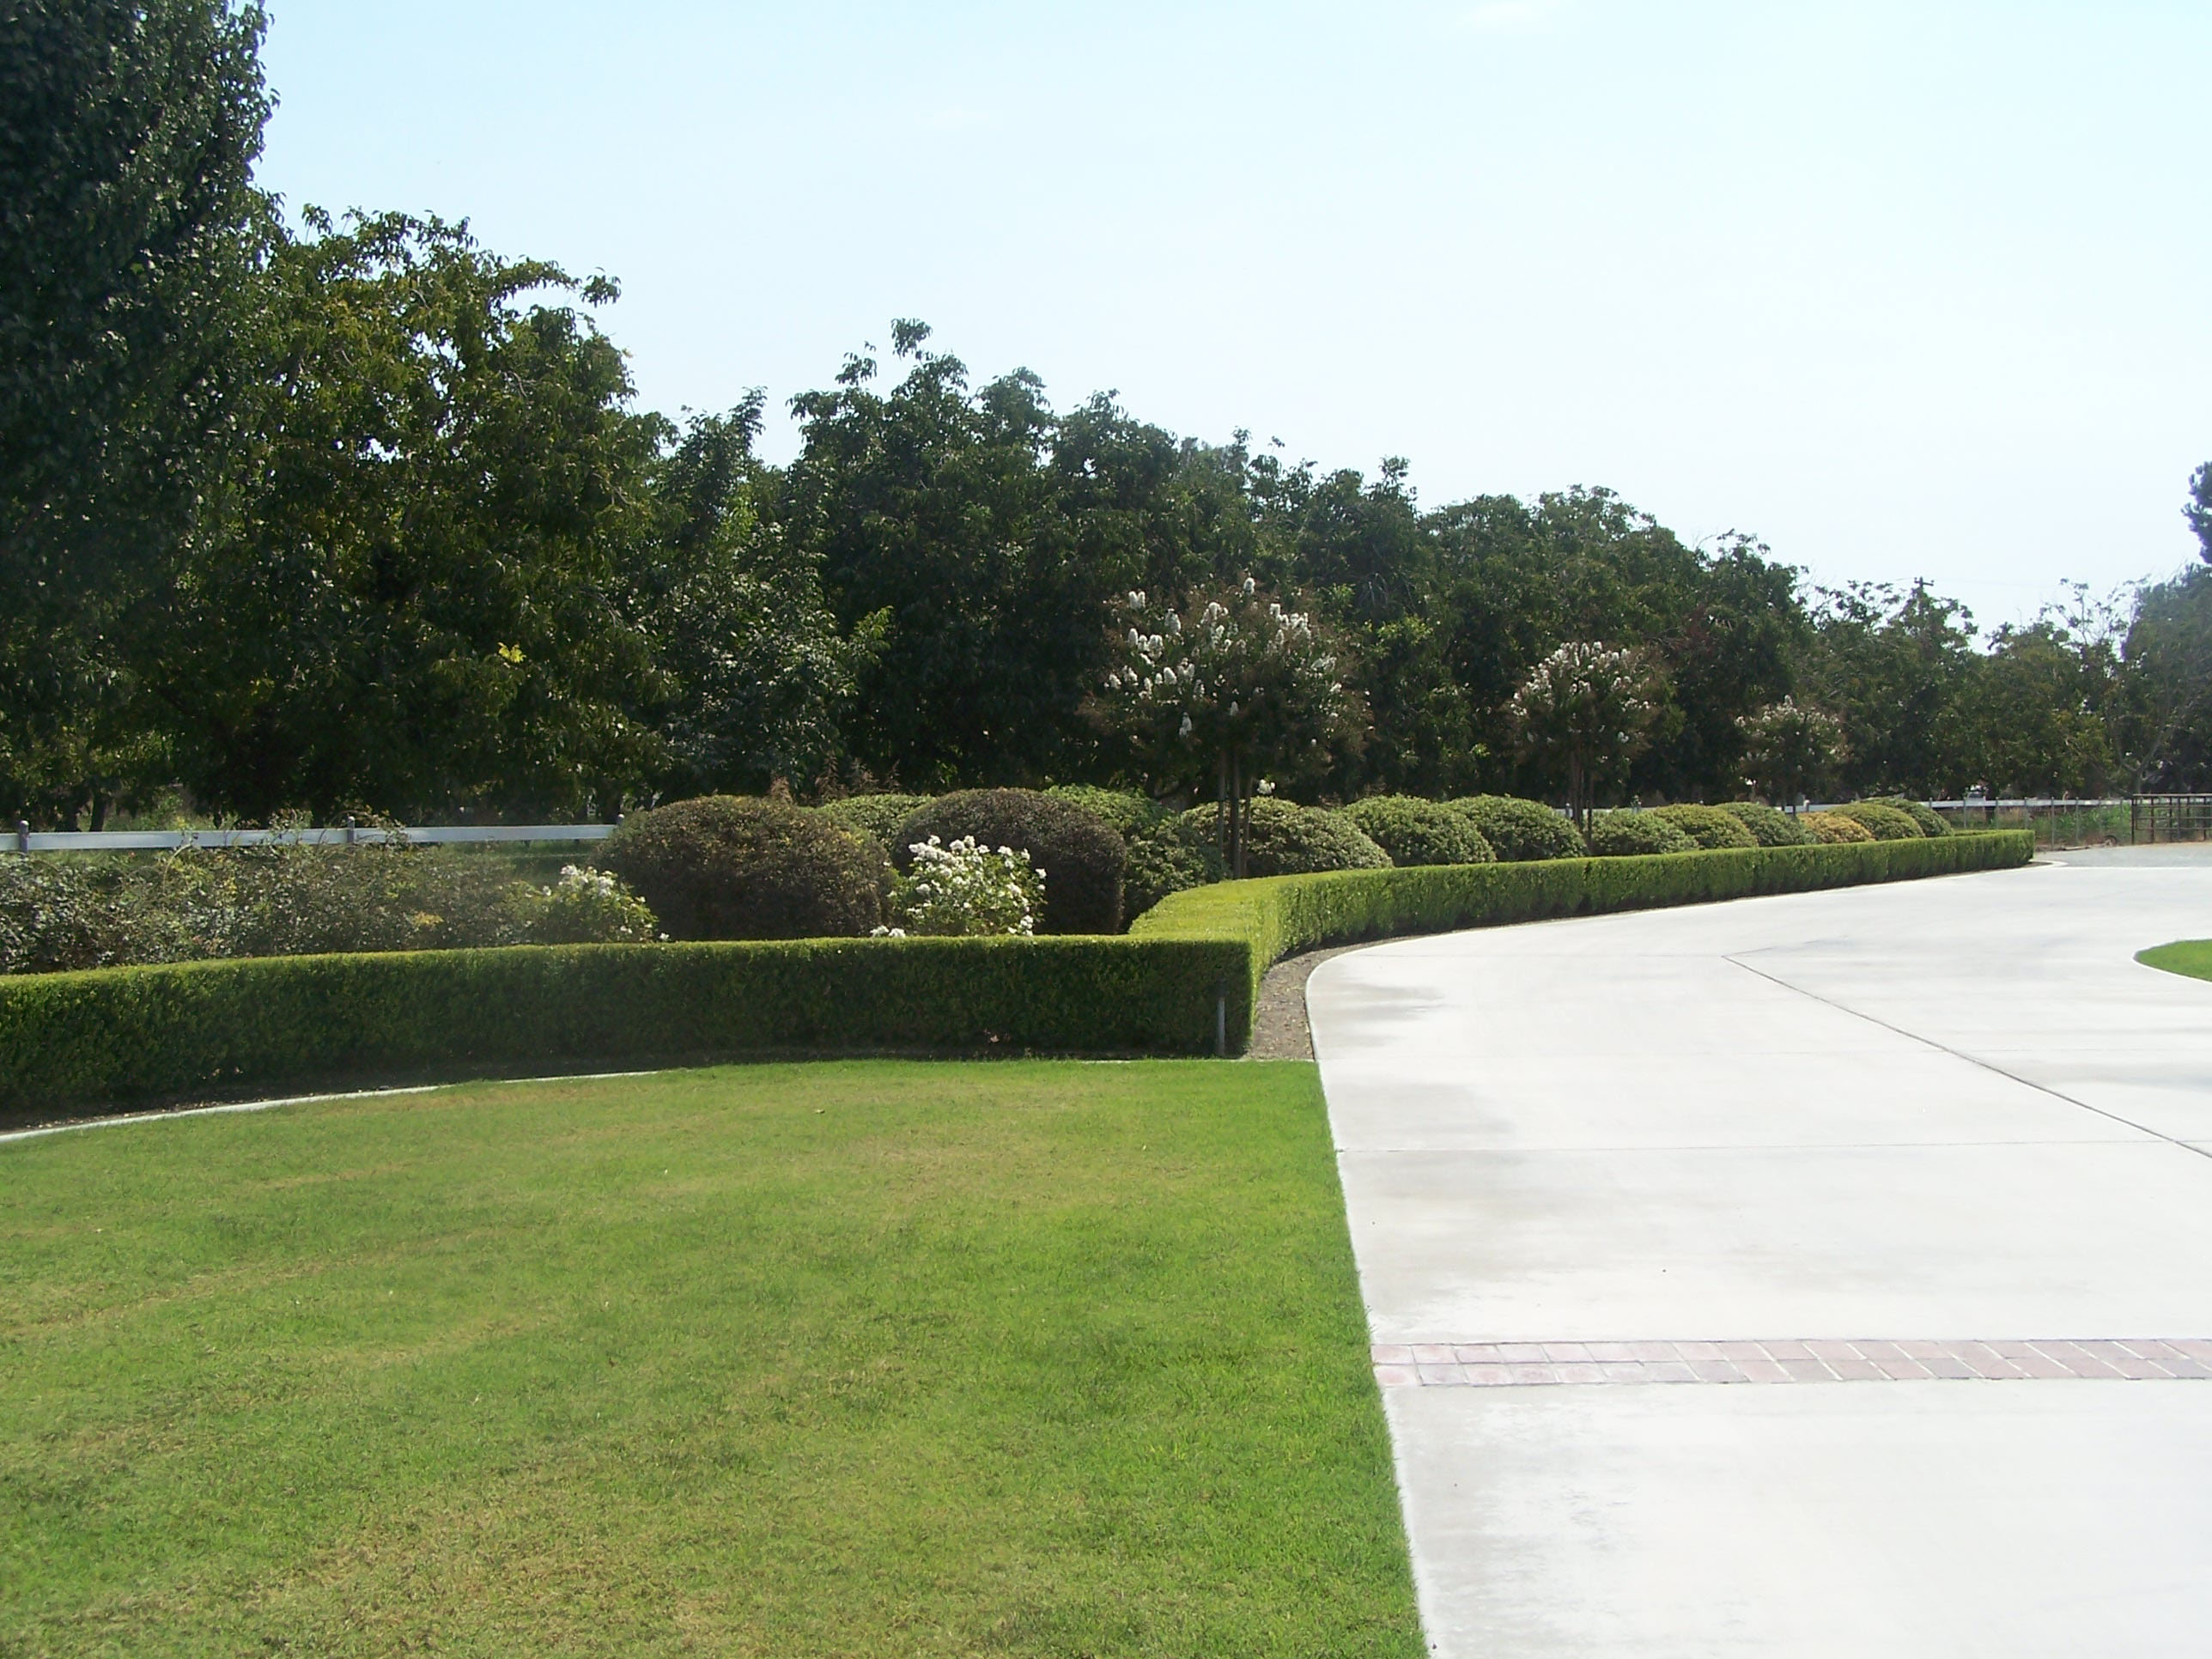 Neat Bushes and Hedges in Manicured Landscape